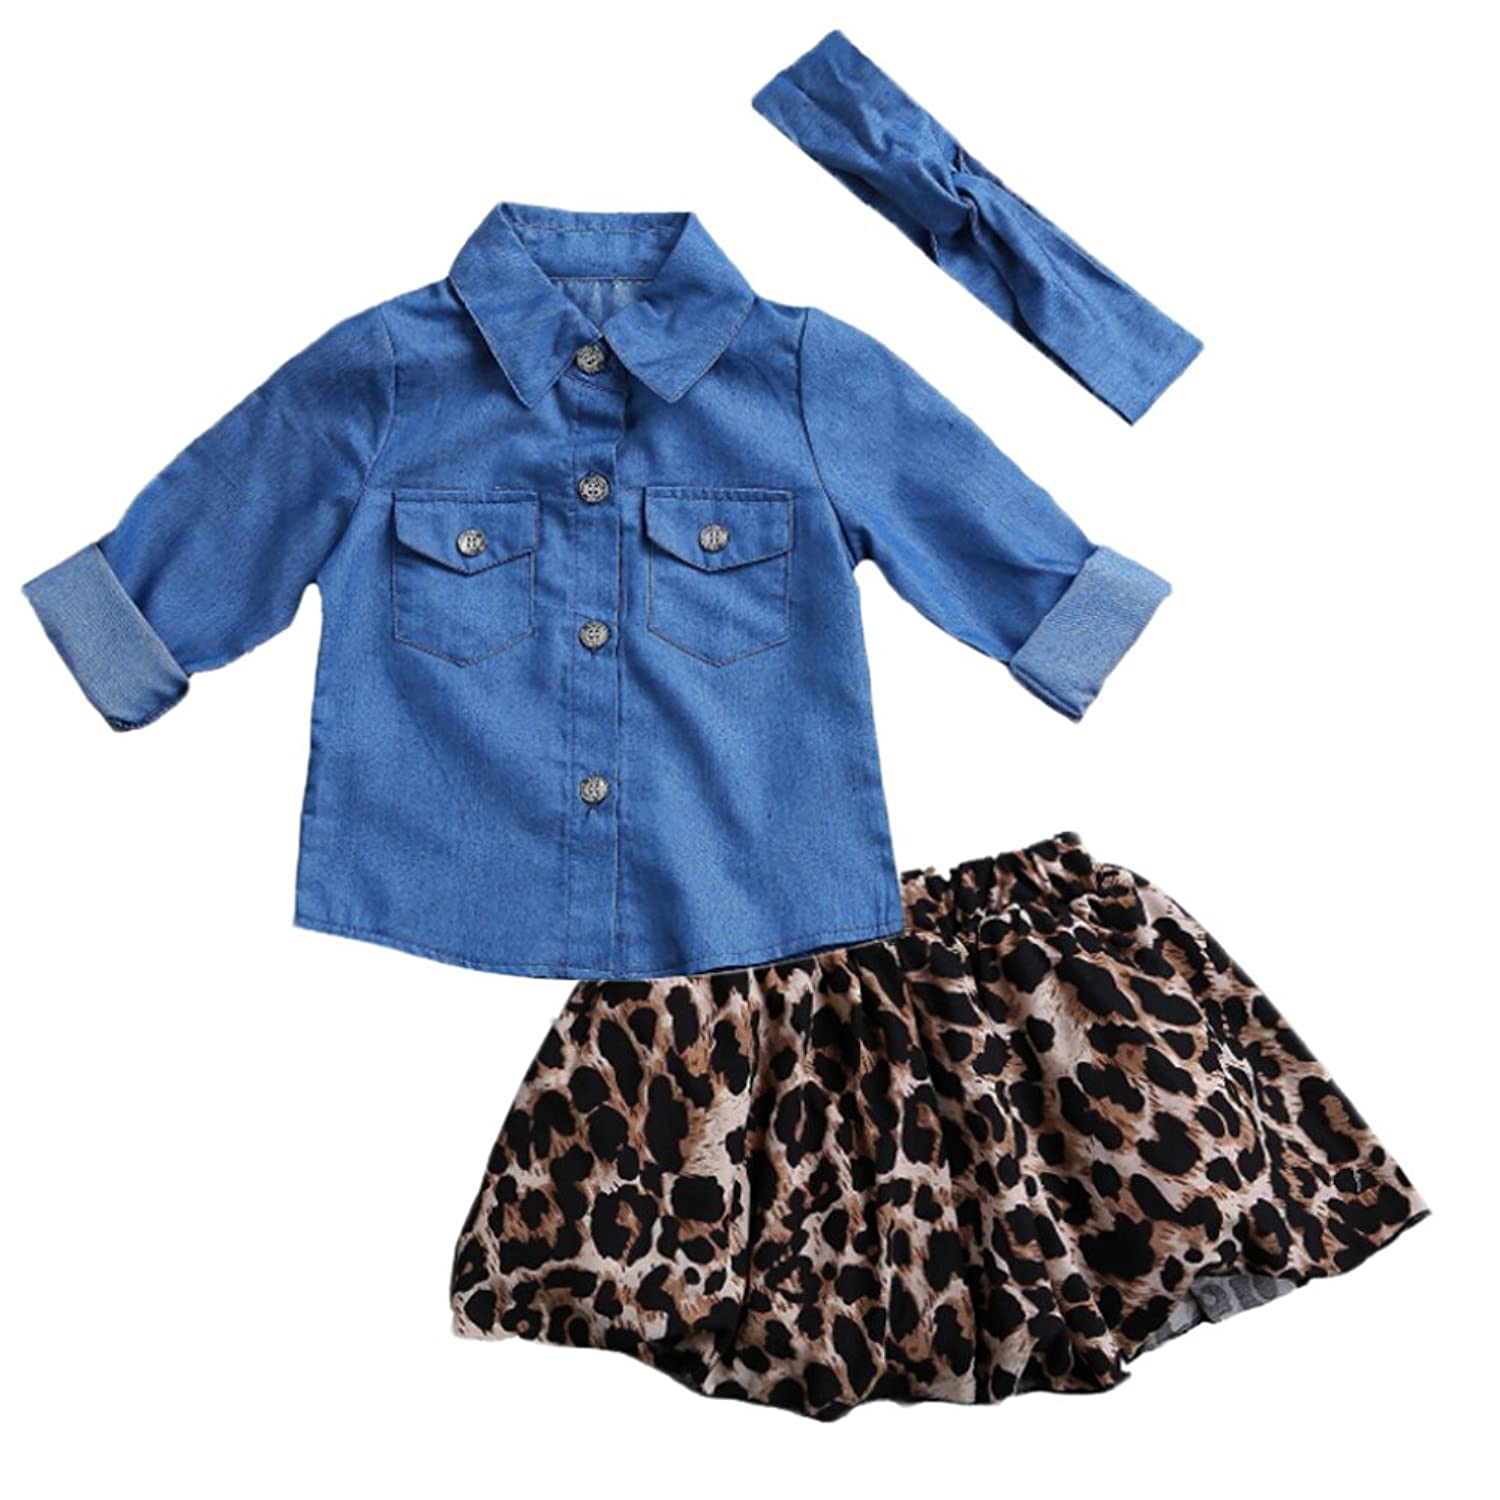 4b3e0b110b2 Family Matching Mother Daughter Denim Long Sleeve Shirt and Leopard Skirt Outfit  Set at Amazon Women's Clothing store: